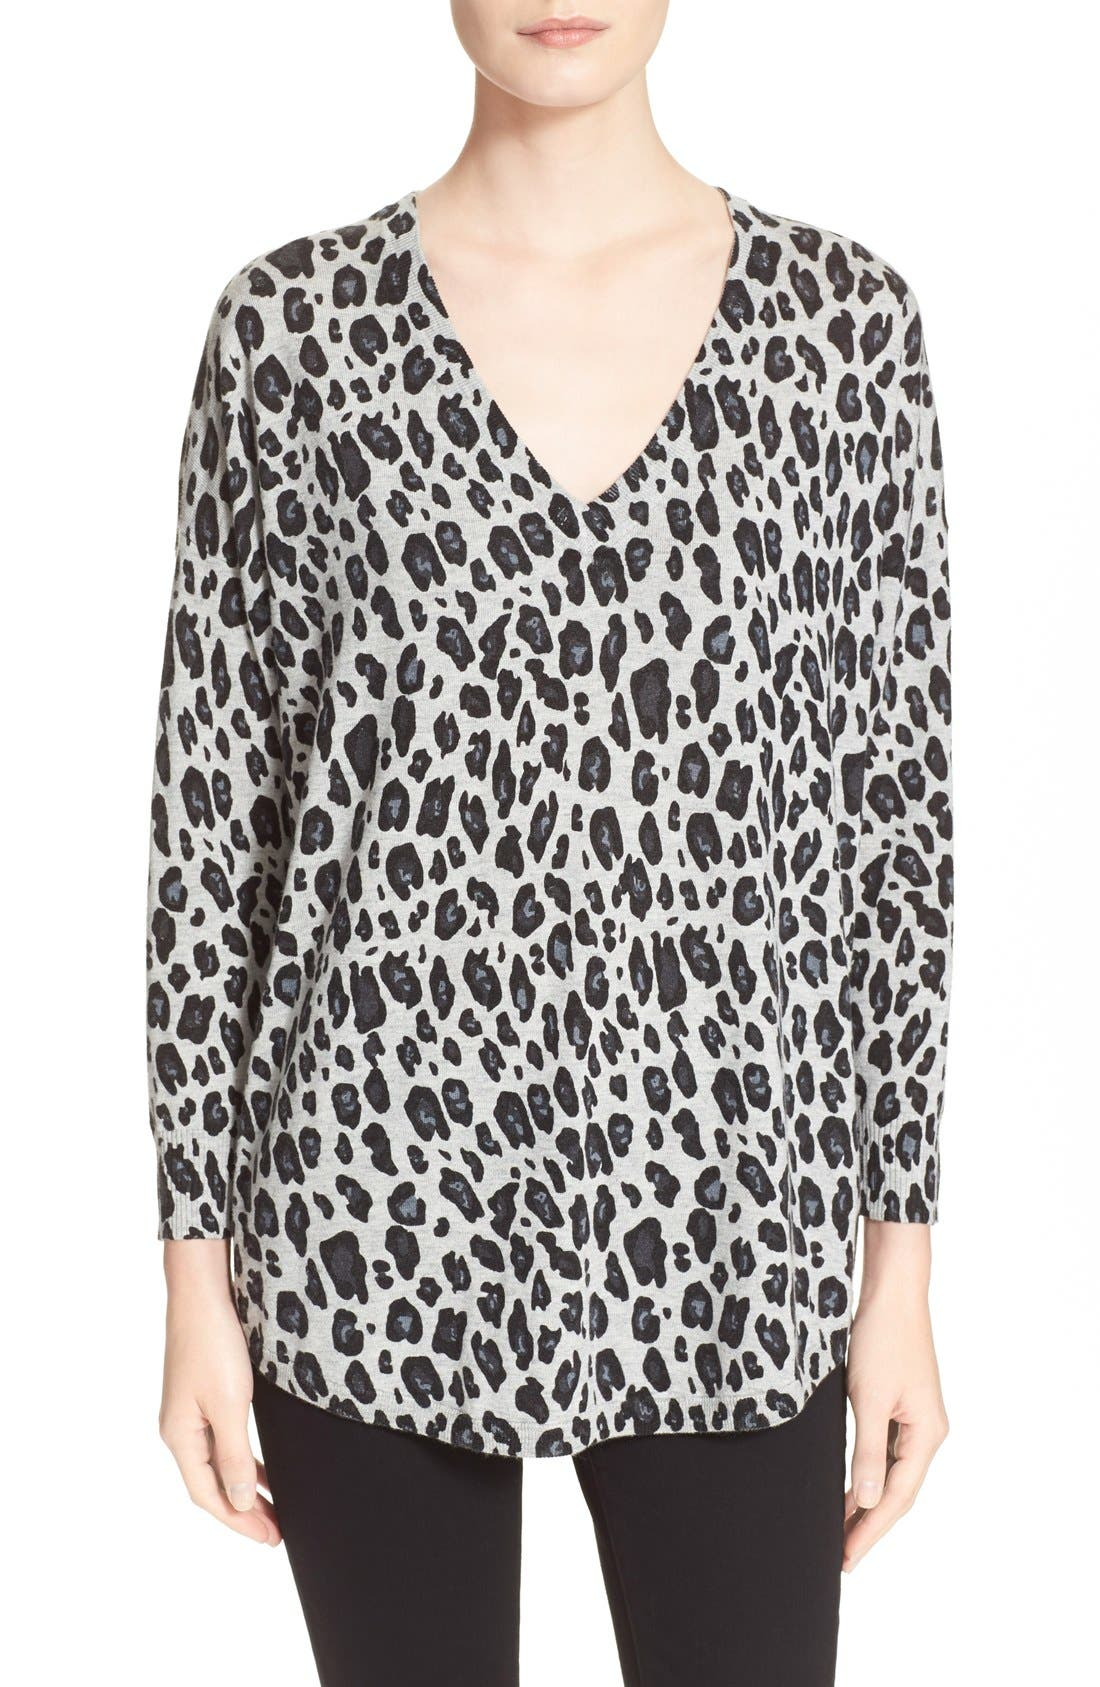 Alternate Image 1 Selected - Joie 'Chyanne' Leopard Print V-Neck Pullover